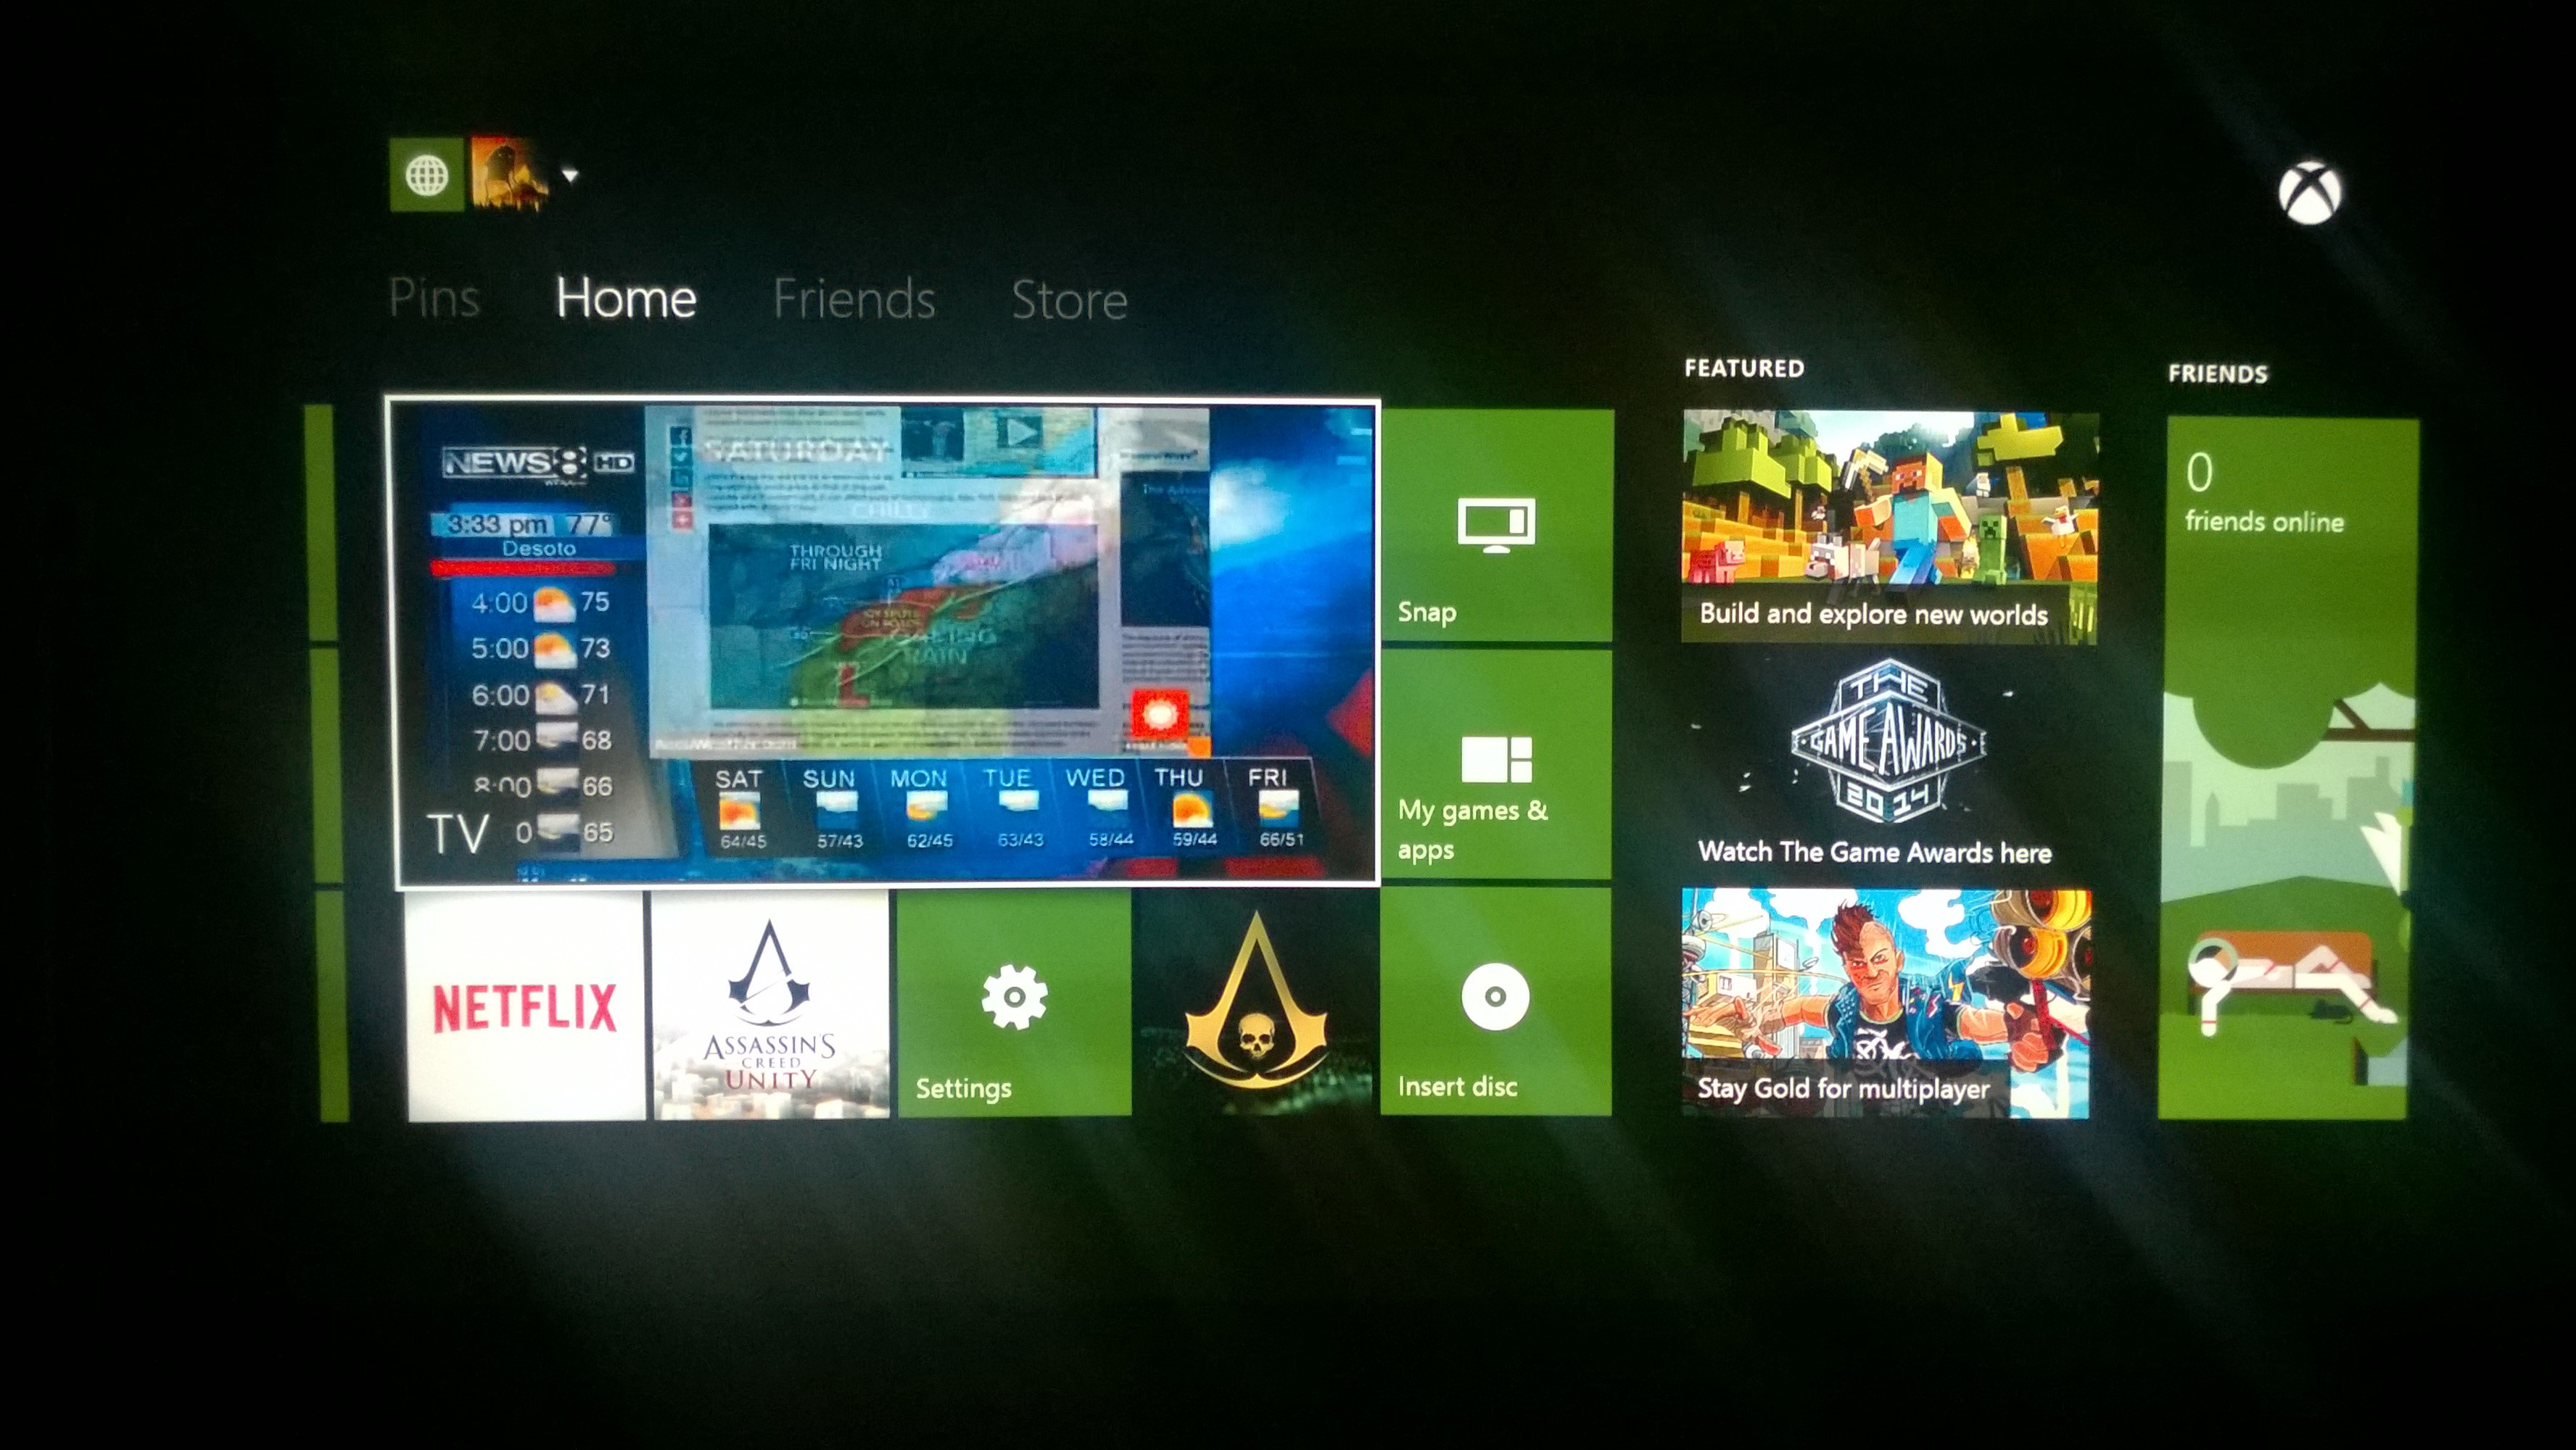 Future Xbox One Update With Official Over The Air Tv Capabilities